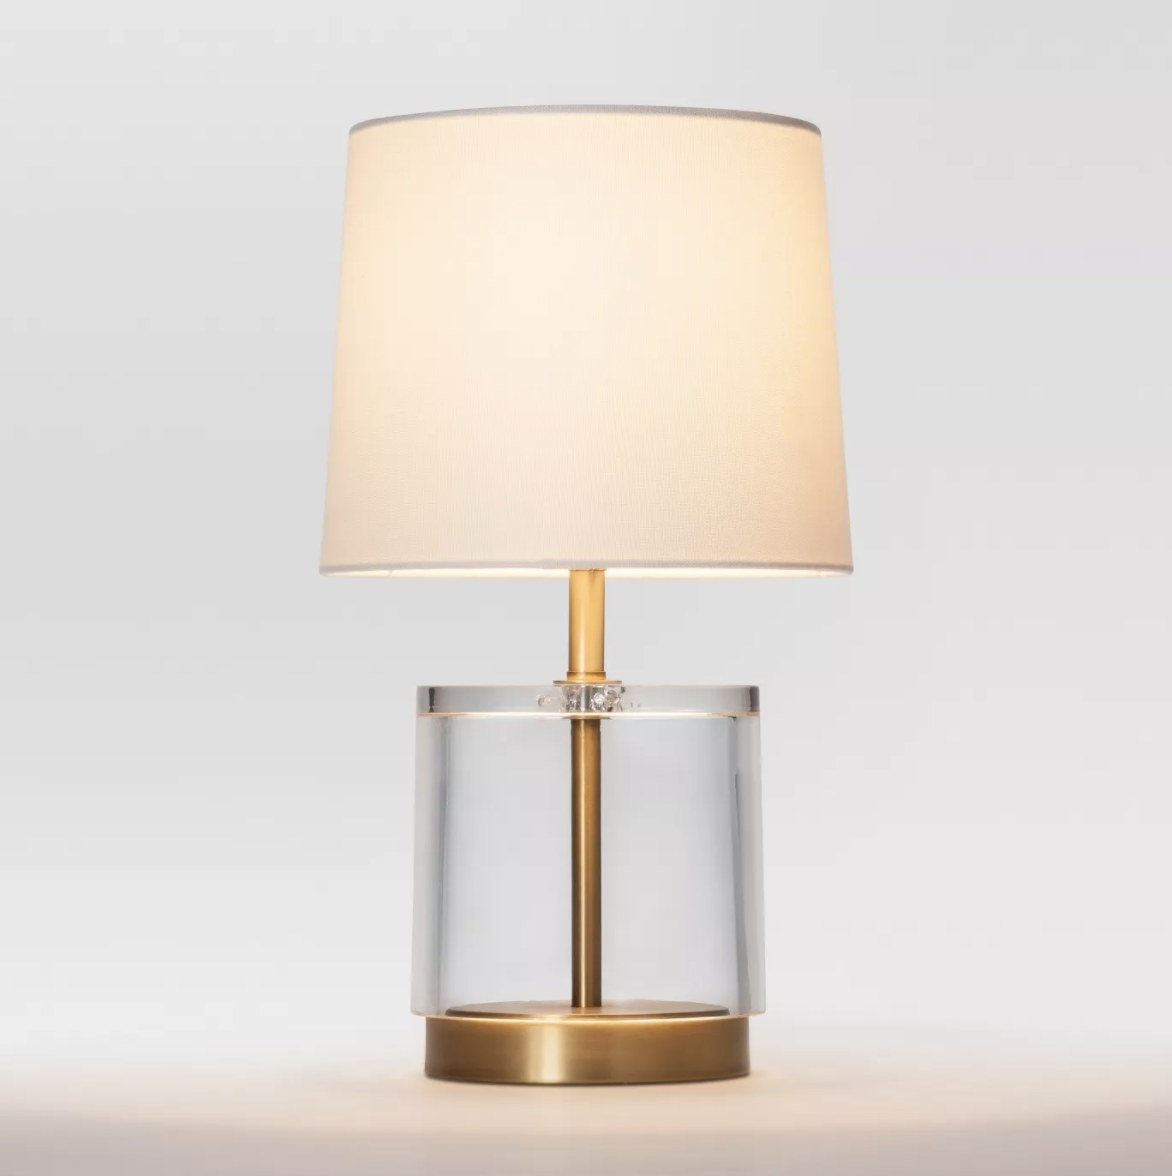 The gold and clear acrylic base make this a statement lamp